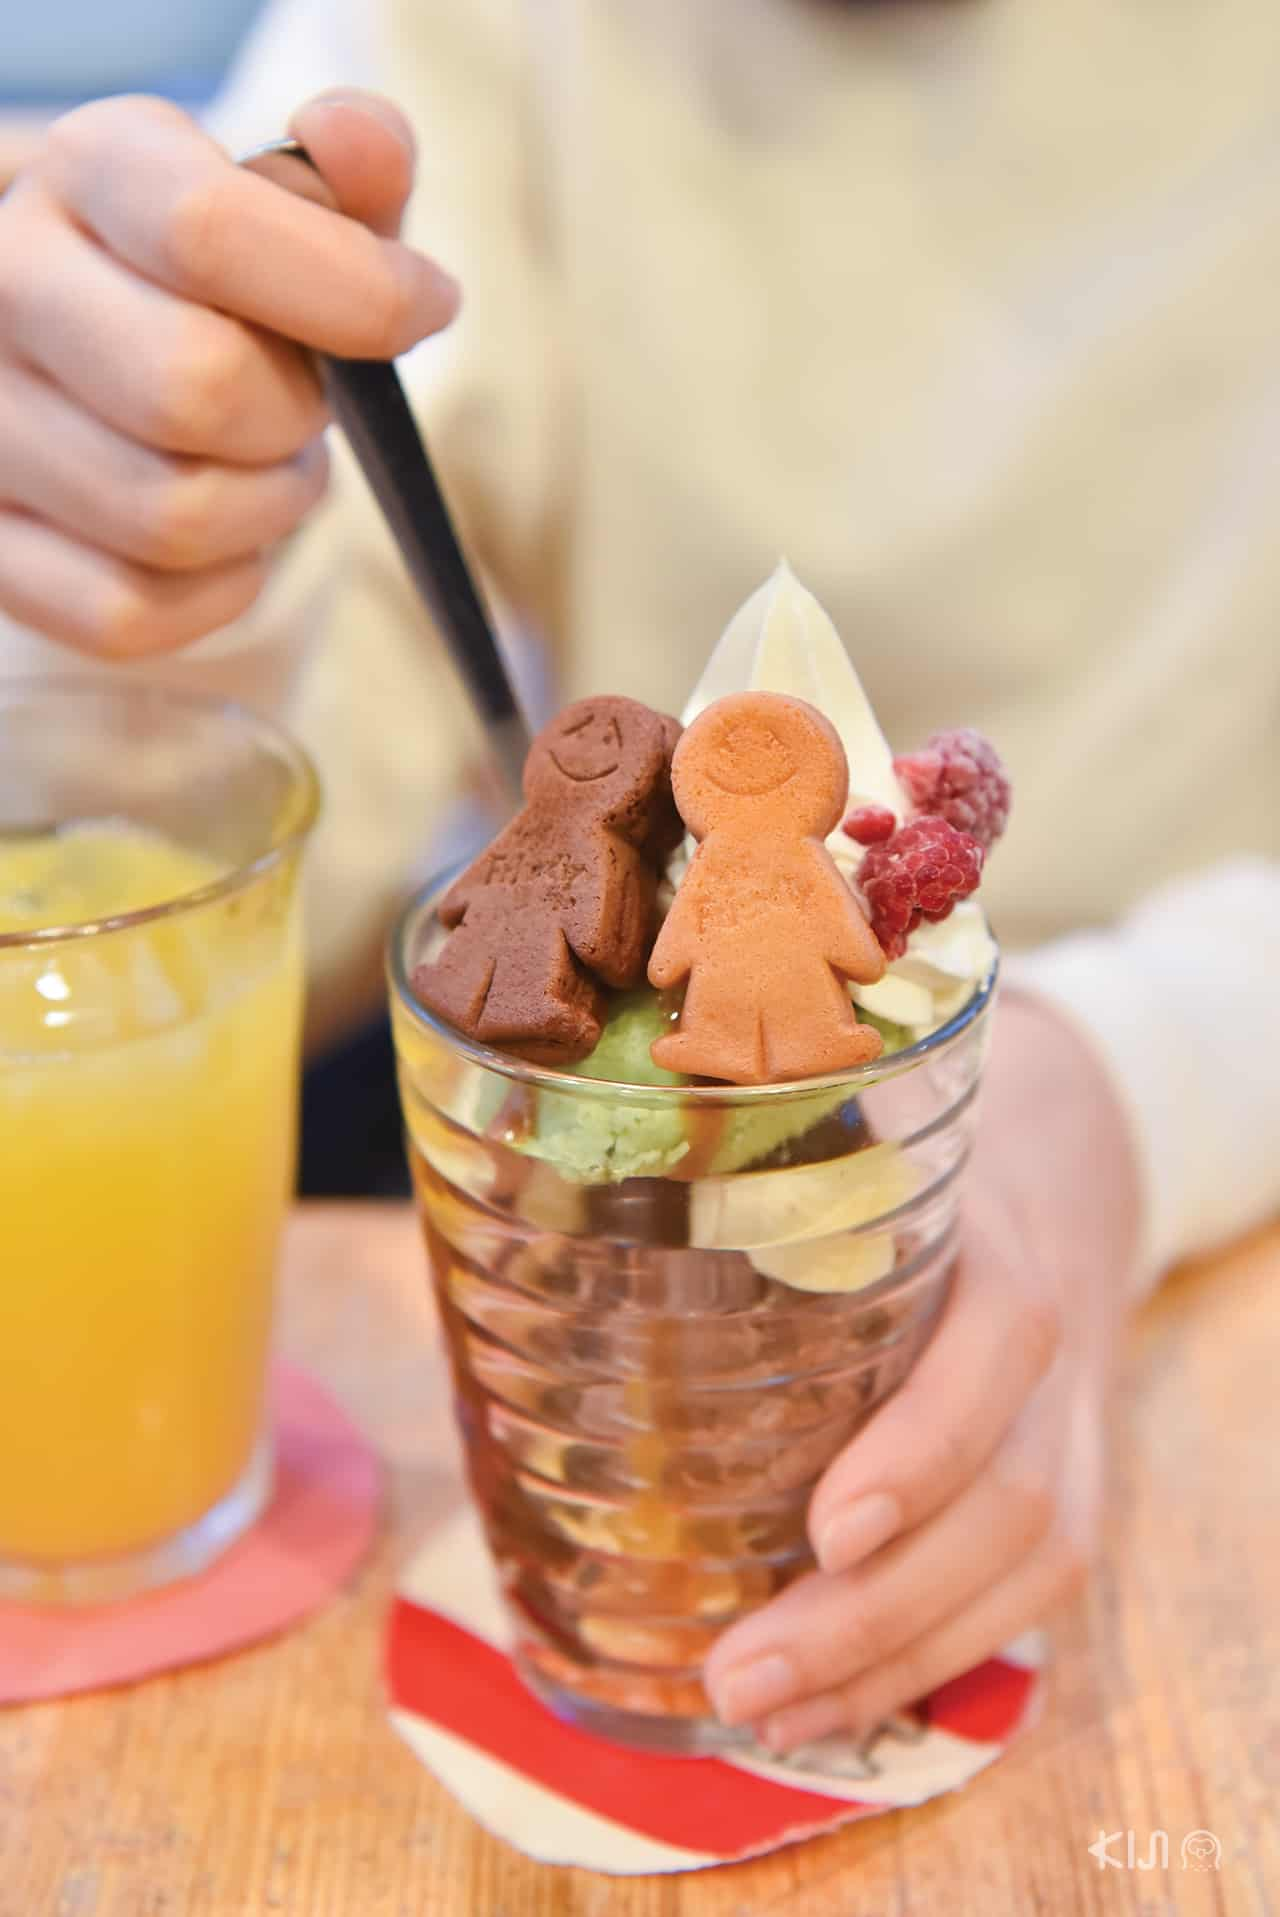 Pistachio & Chocolate Ice Cream Parfait (680 เยน) Mr. Friendly Cafe , Ebisu station, Tokyo